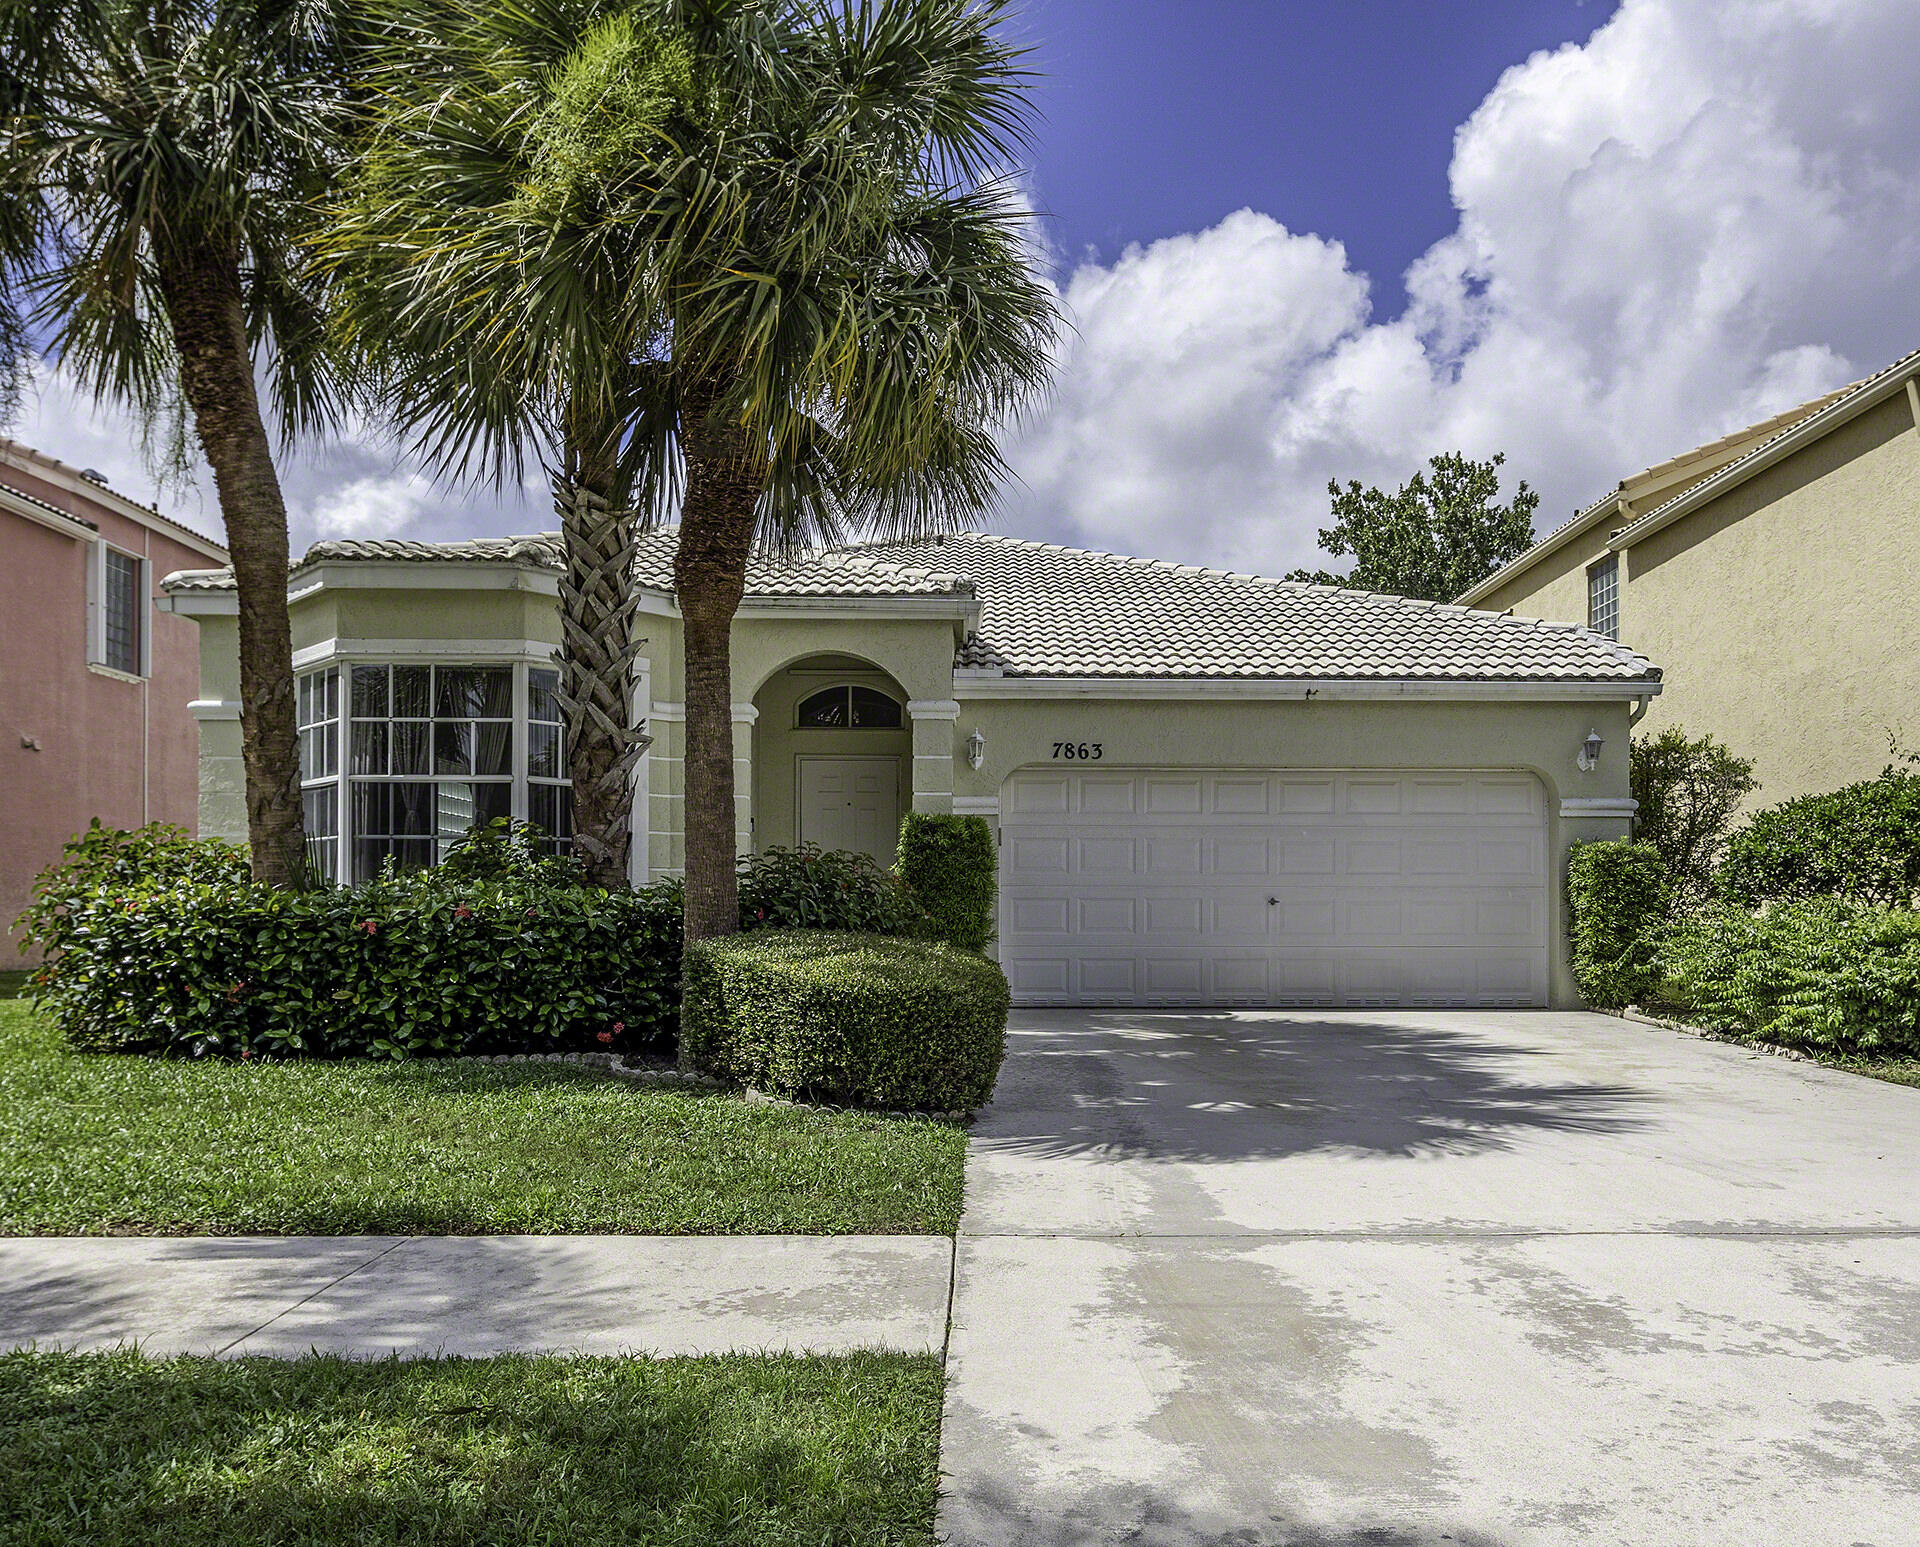 Home for sale in Bridlewood Lake Worth Florida